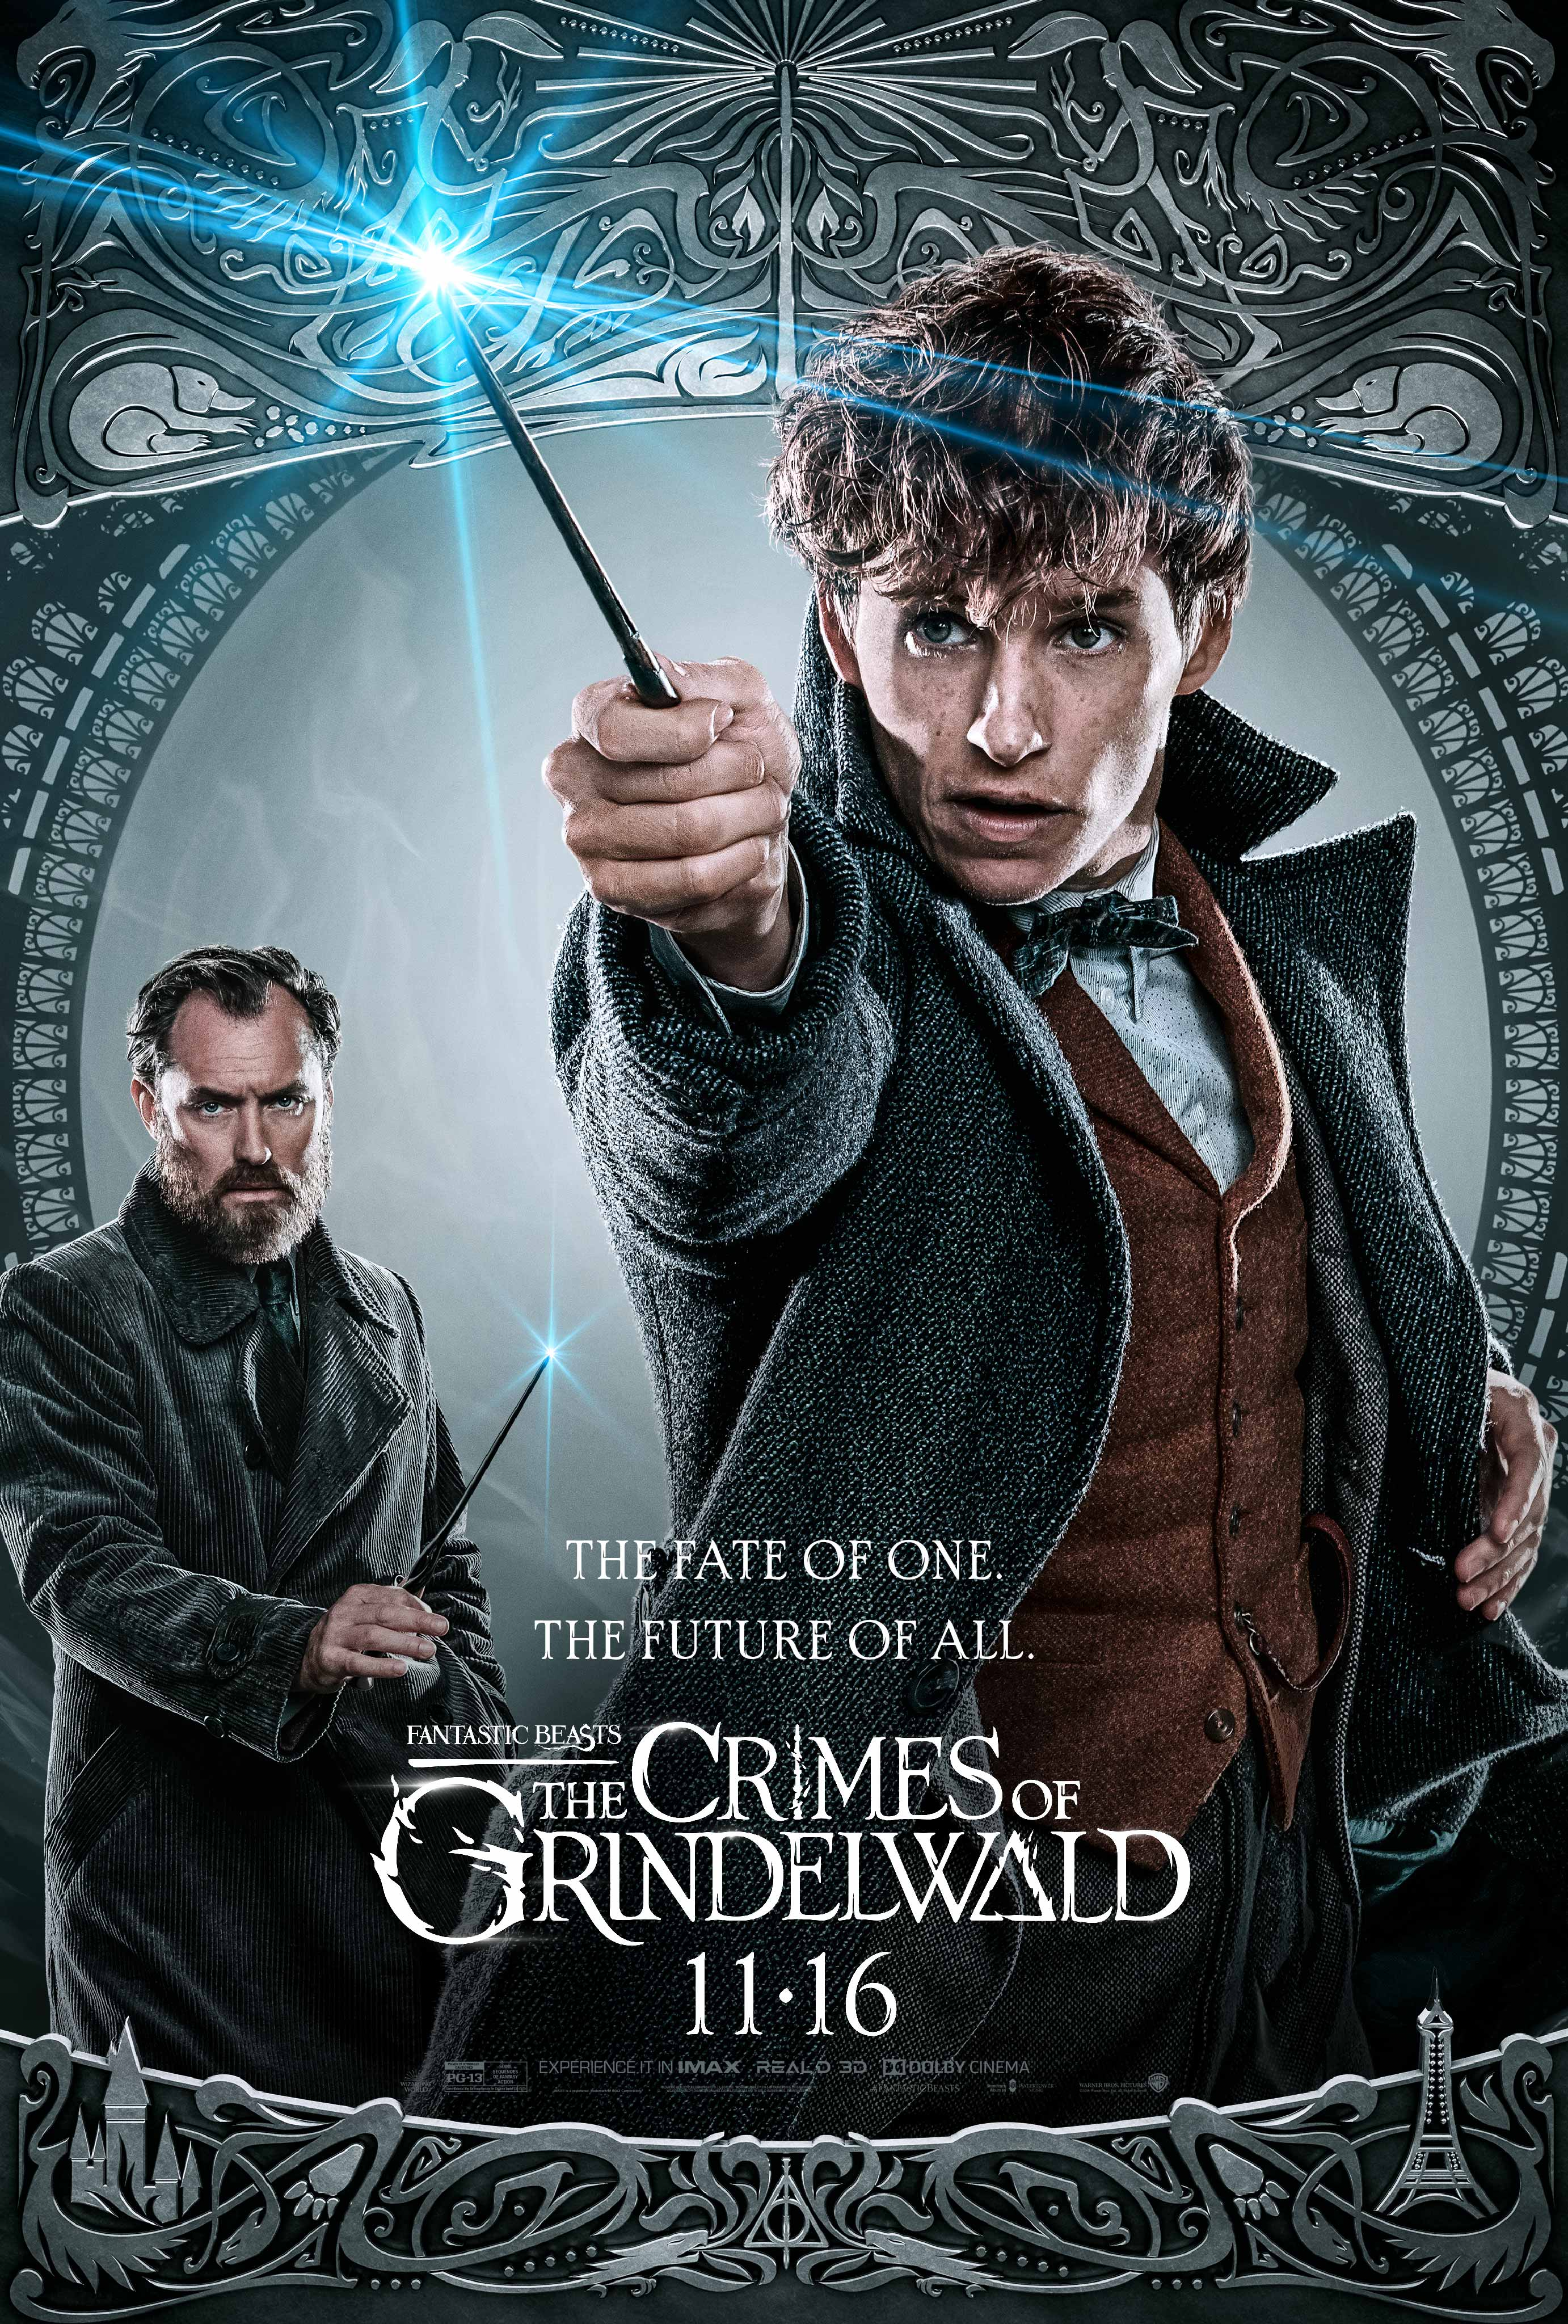 Fantastic Beasts: The Crimes of Grindelwald (2018) Dual Audio 480p BluRay x264